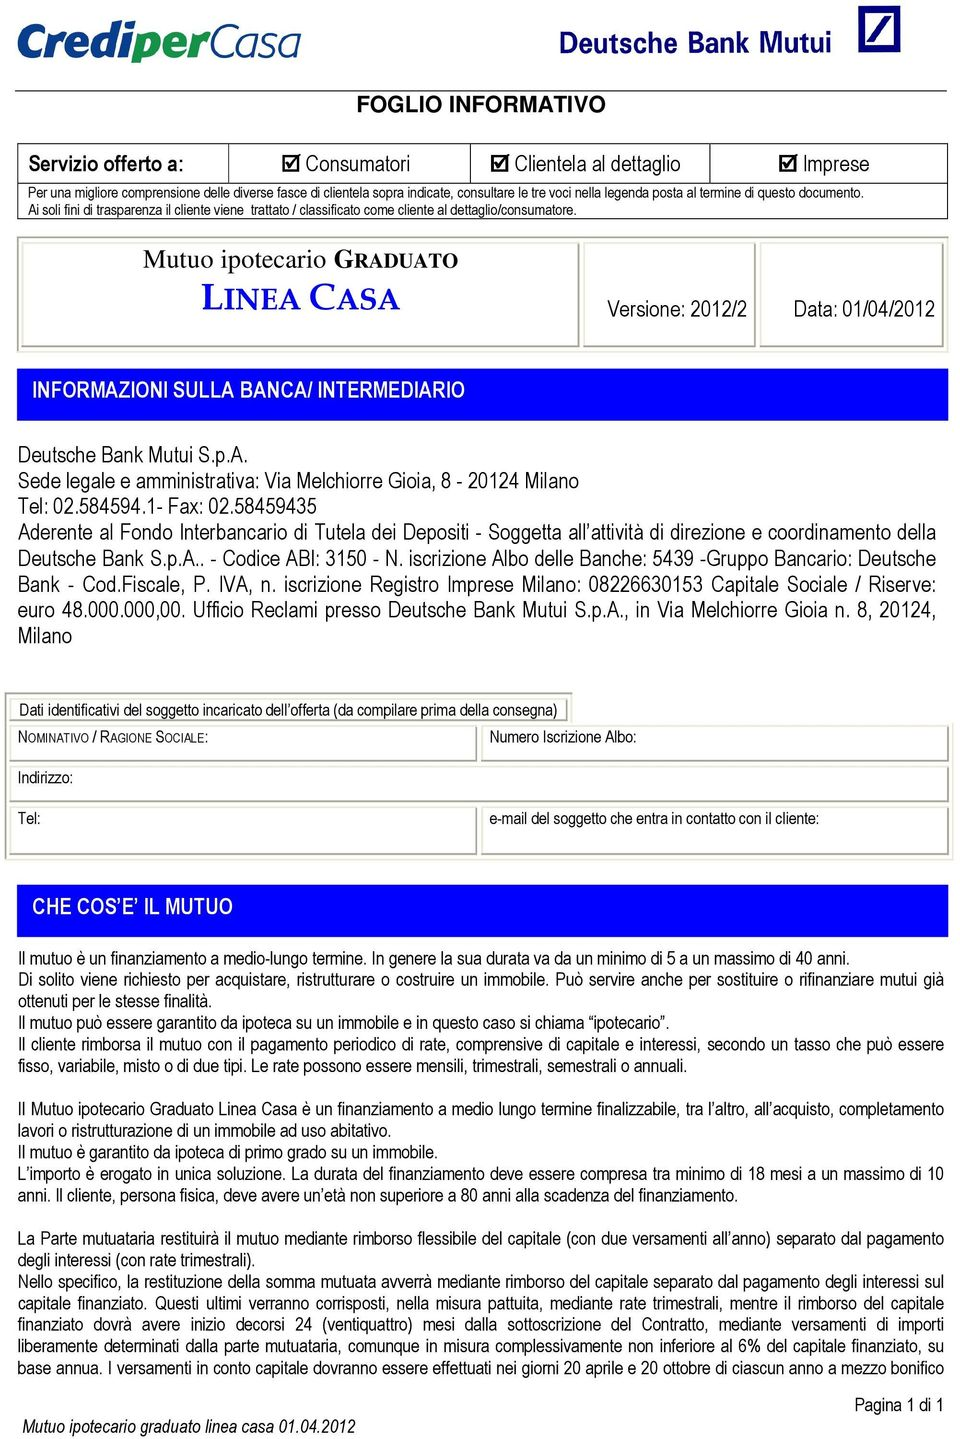 Mutuo ipotecario graduato linea casa versione 2012 2 data - Mutuo casa deutsche bank ...